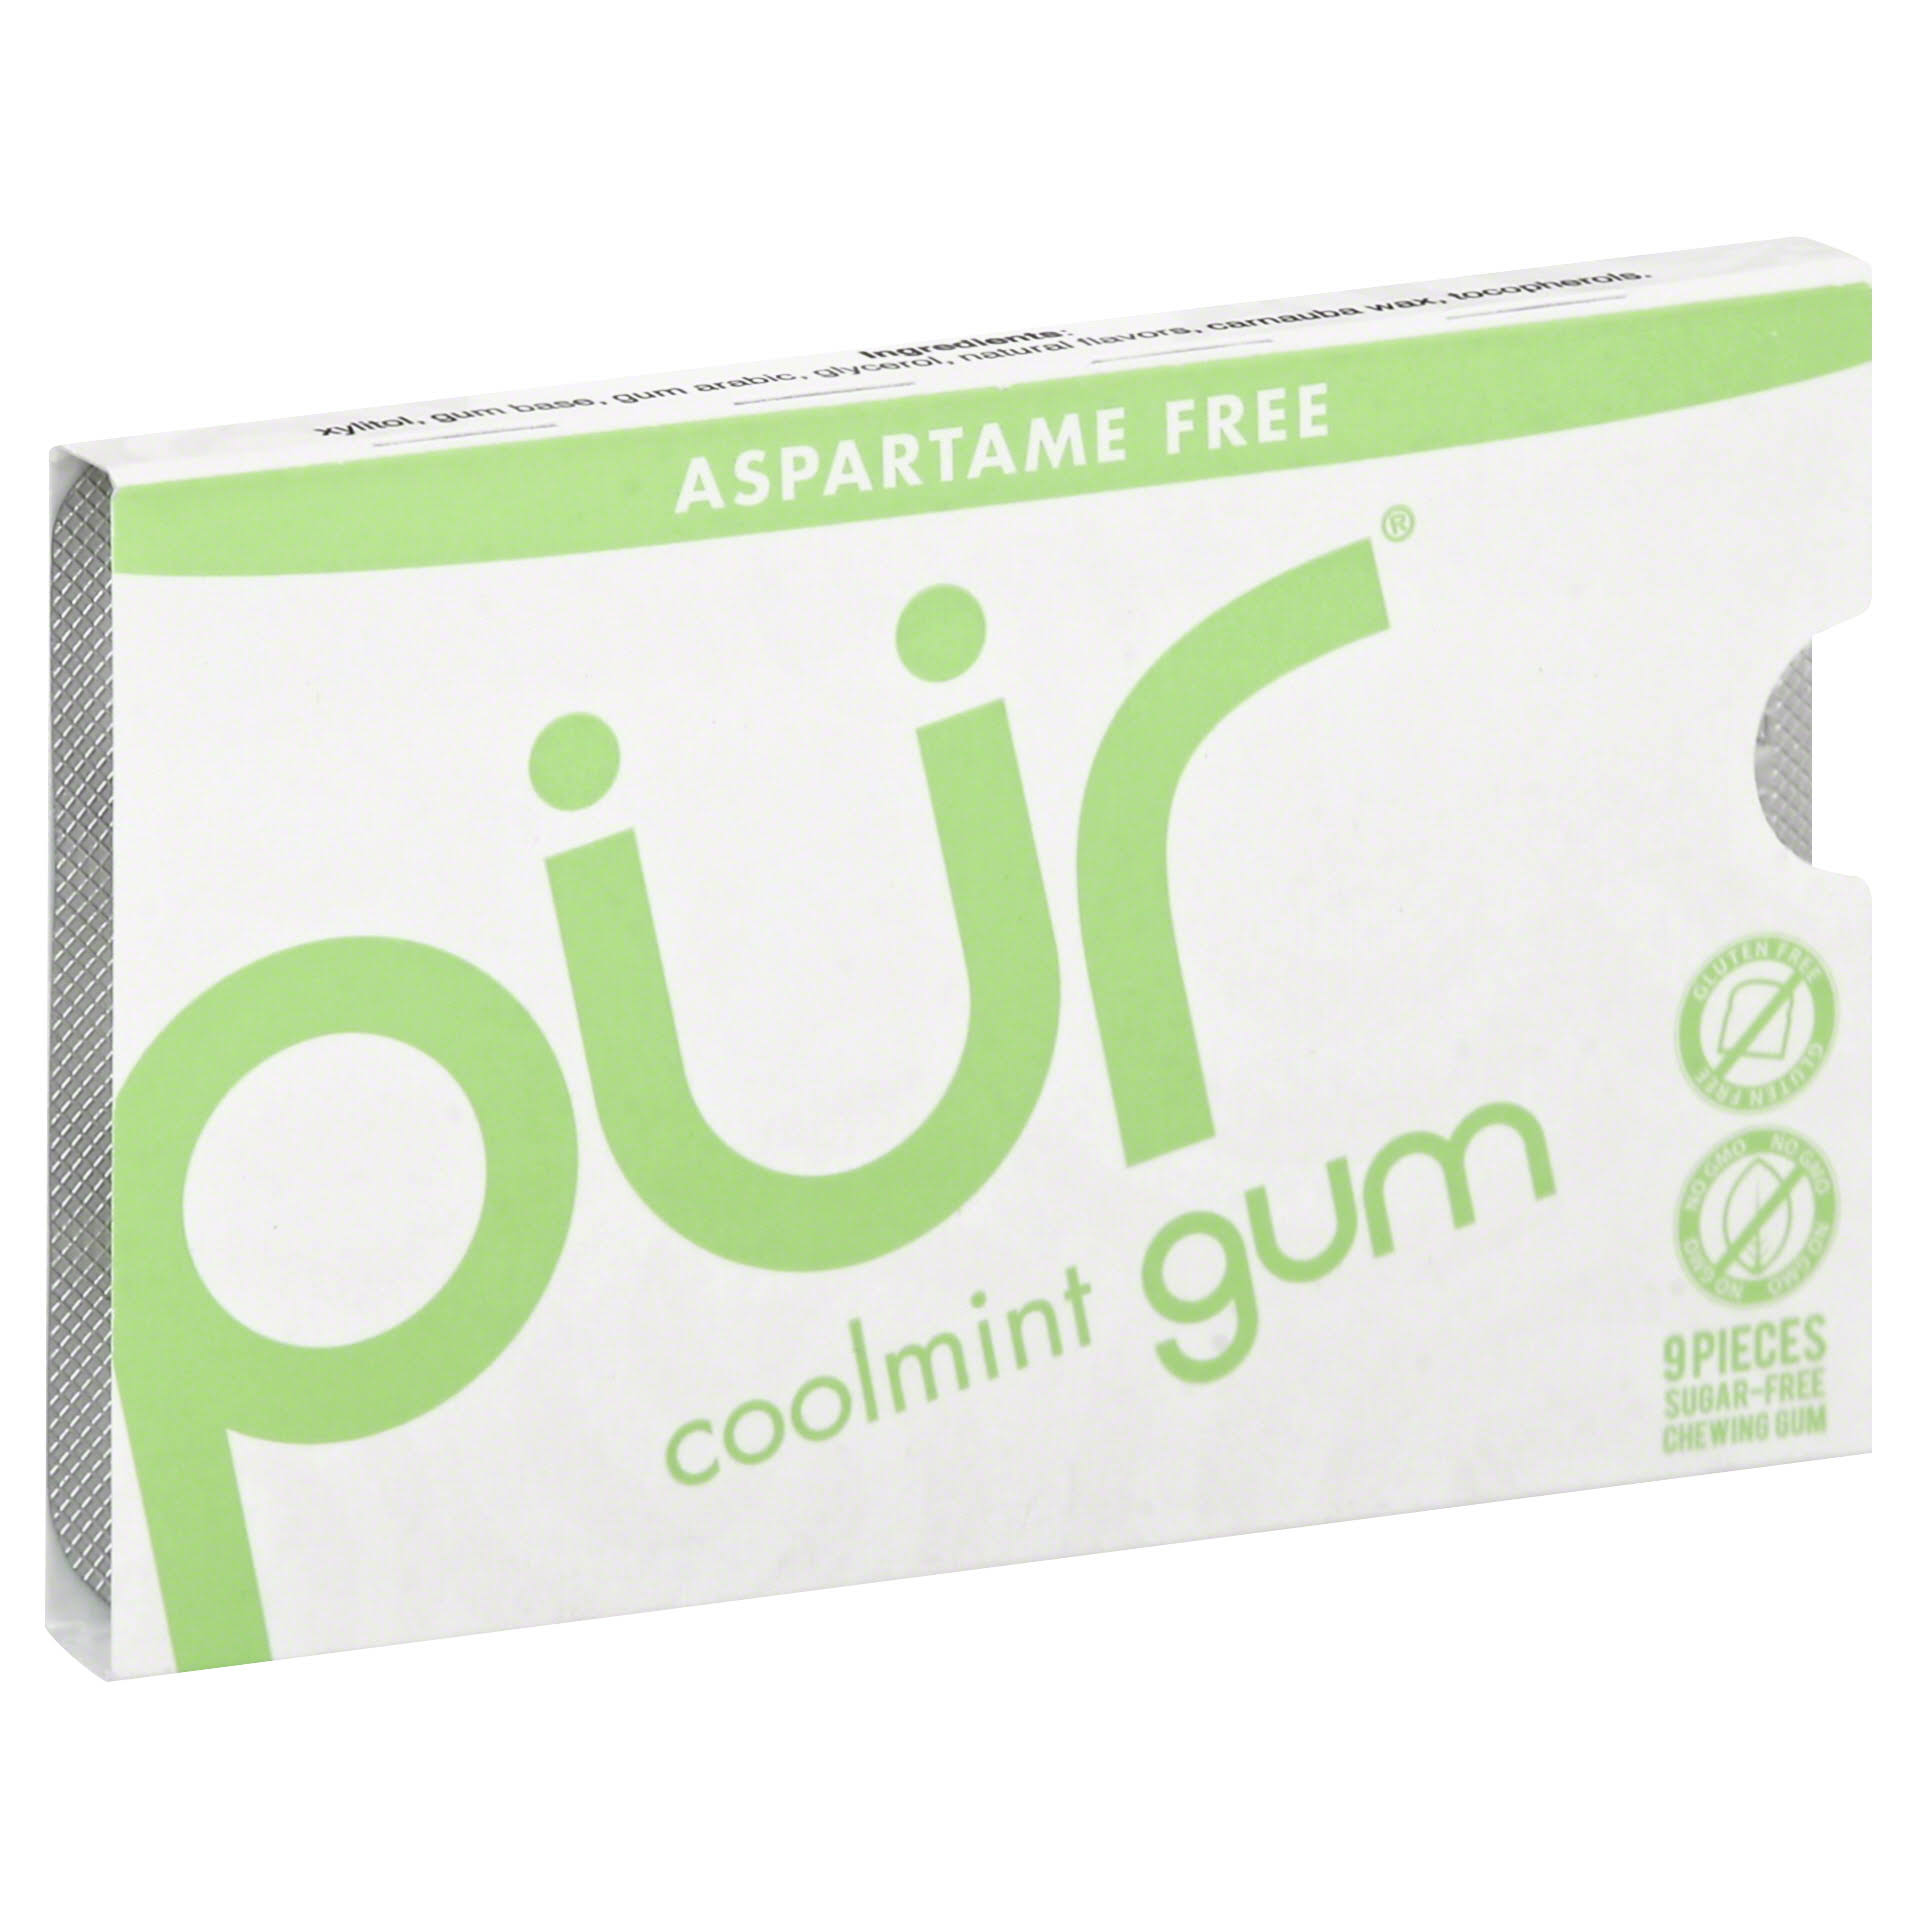 Pur Chewing Gum - Sugar Free, Coolmint, 9pcs